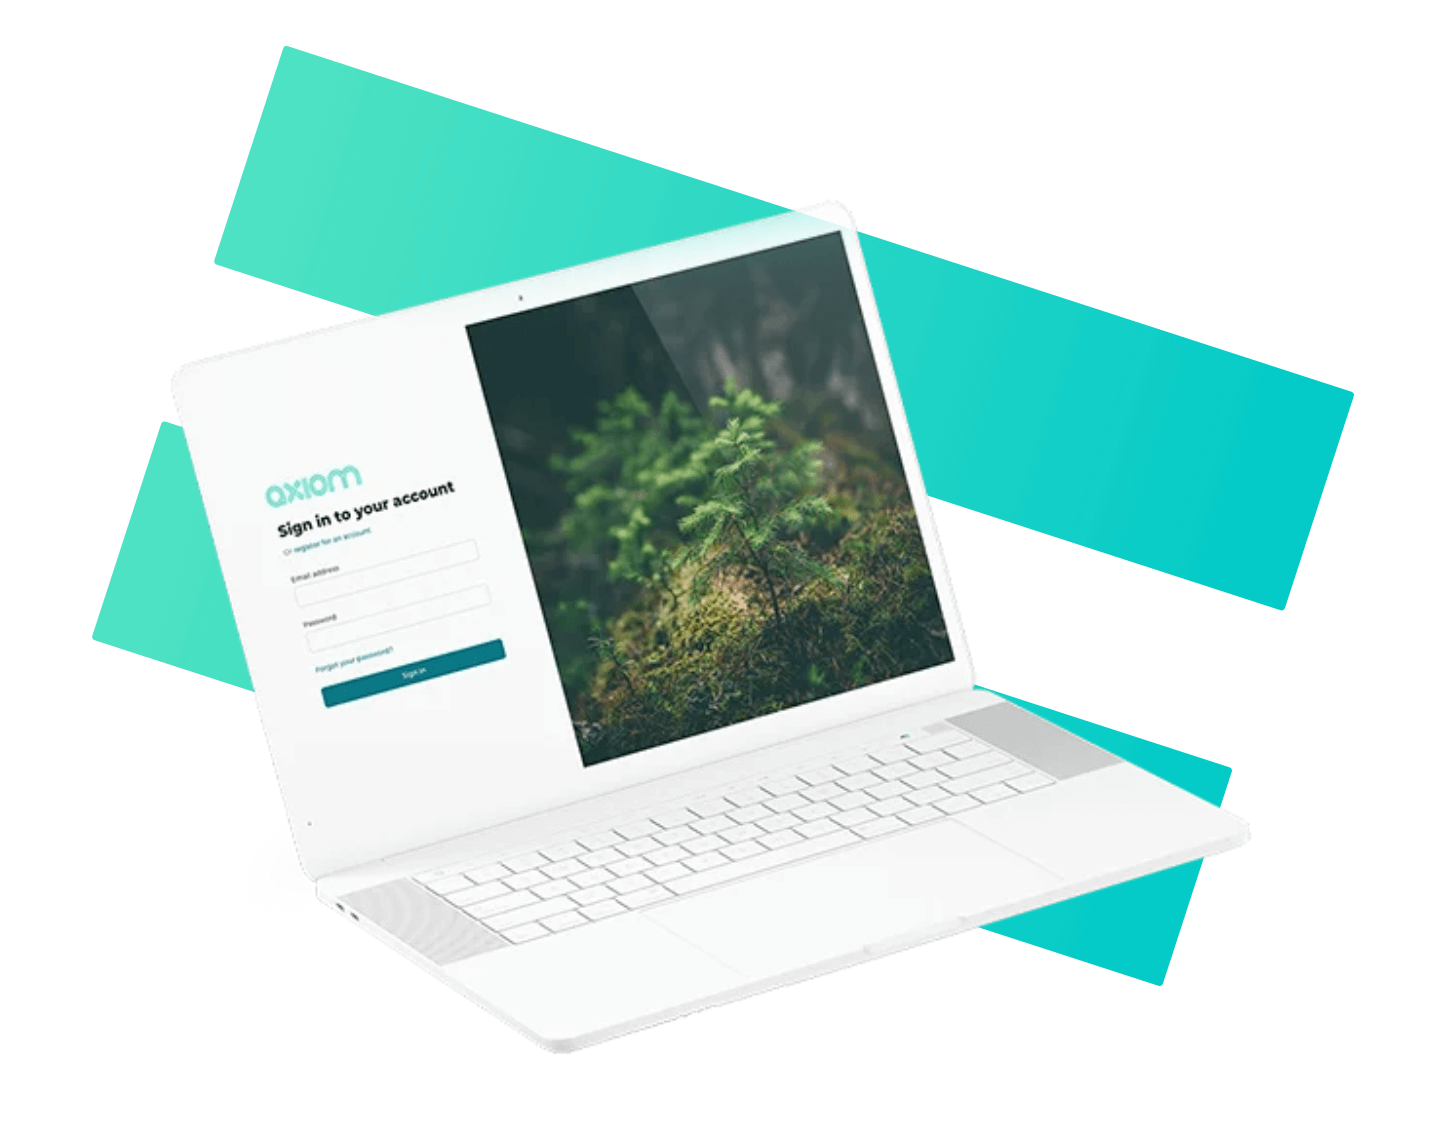 Axiom sustainability software login page